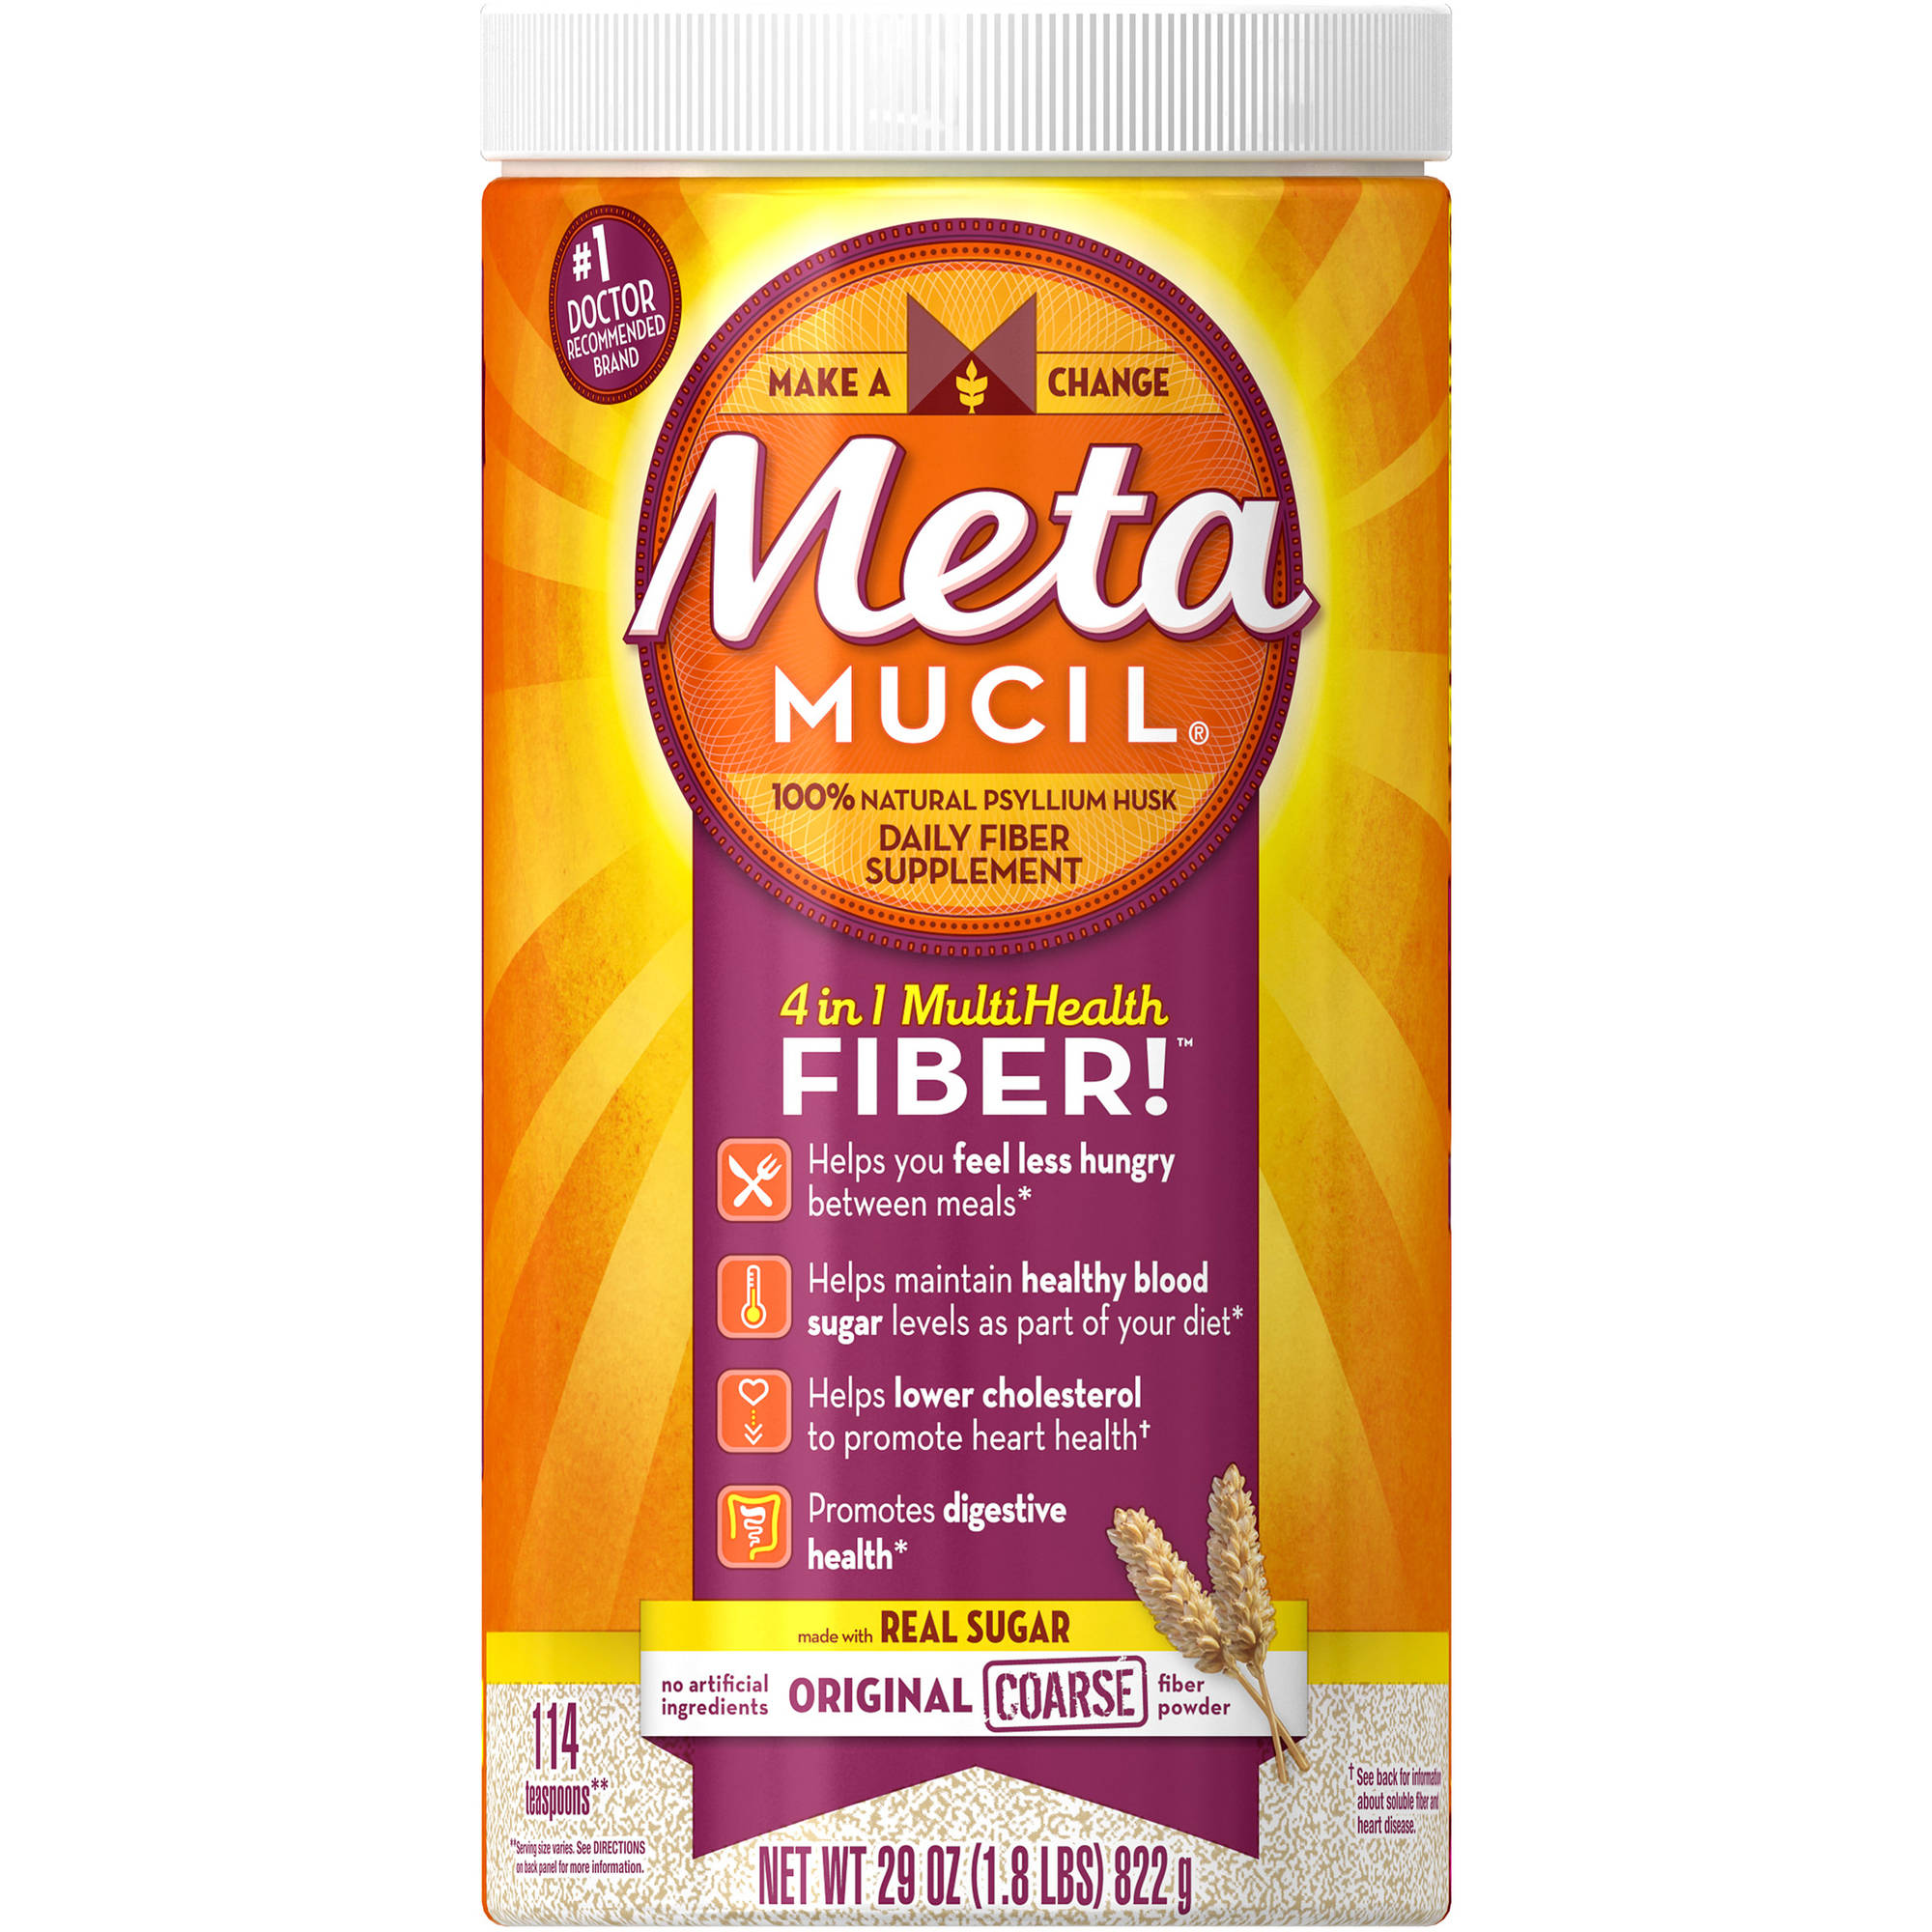 Metamucil 100% Natural Psyllium Husk Daily Fiber Supplement, 114 doses, 29 oz